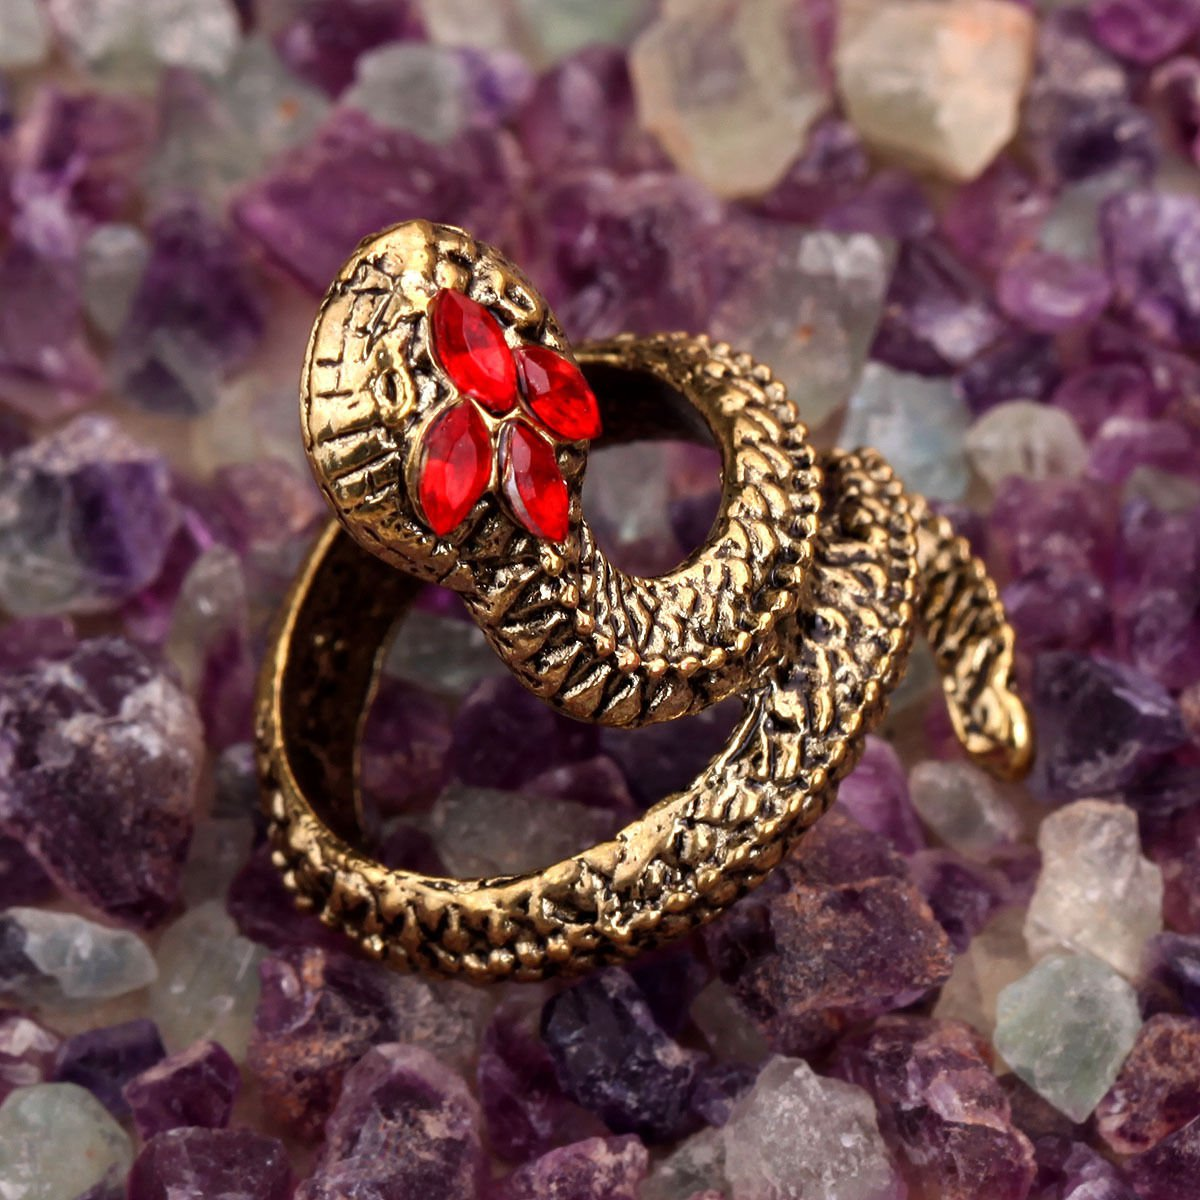 Fashion Punk Exotic Vintage Style Retro Red Crystal Antique Bronze Snake Ring